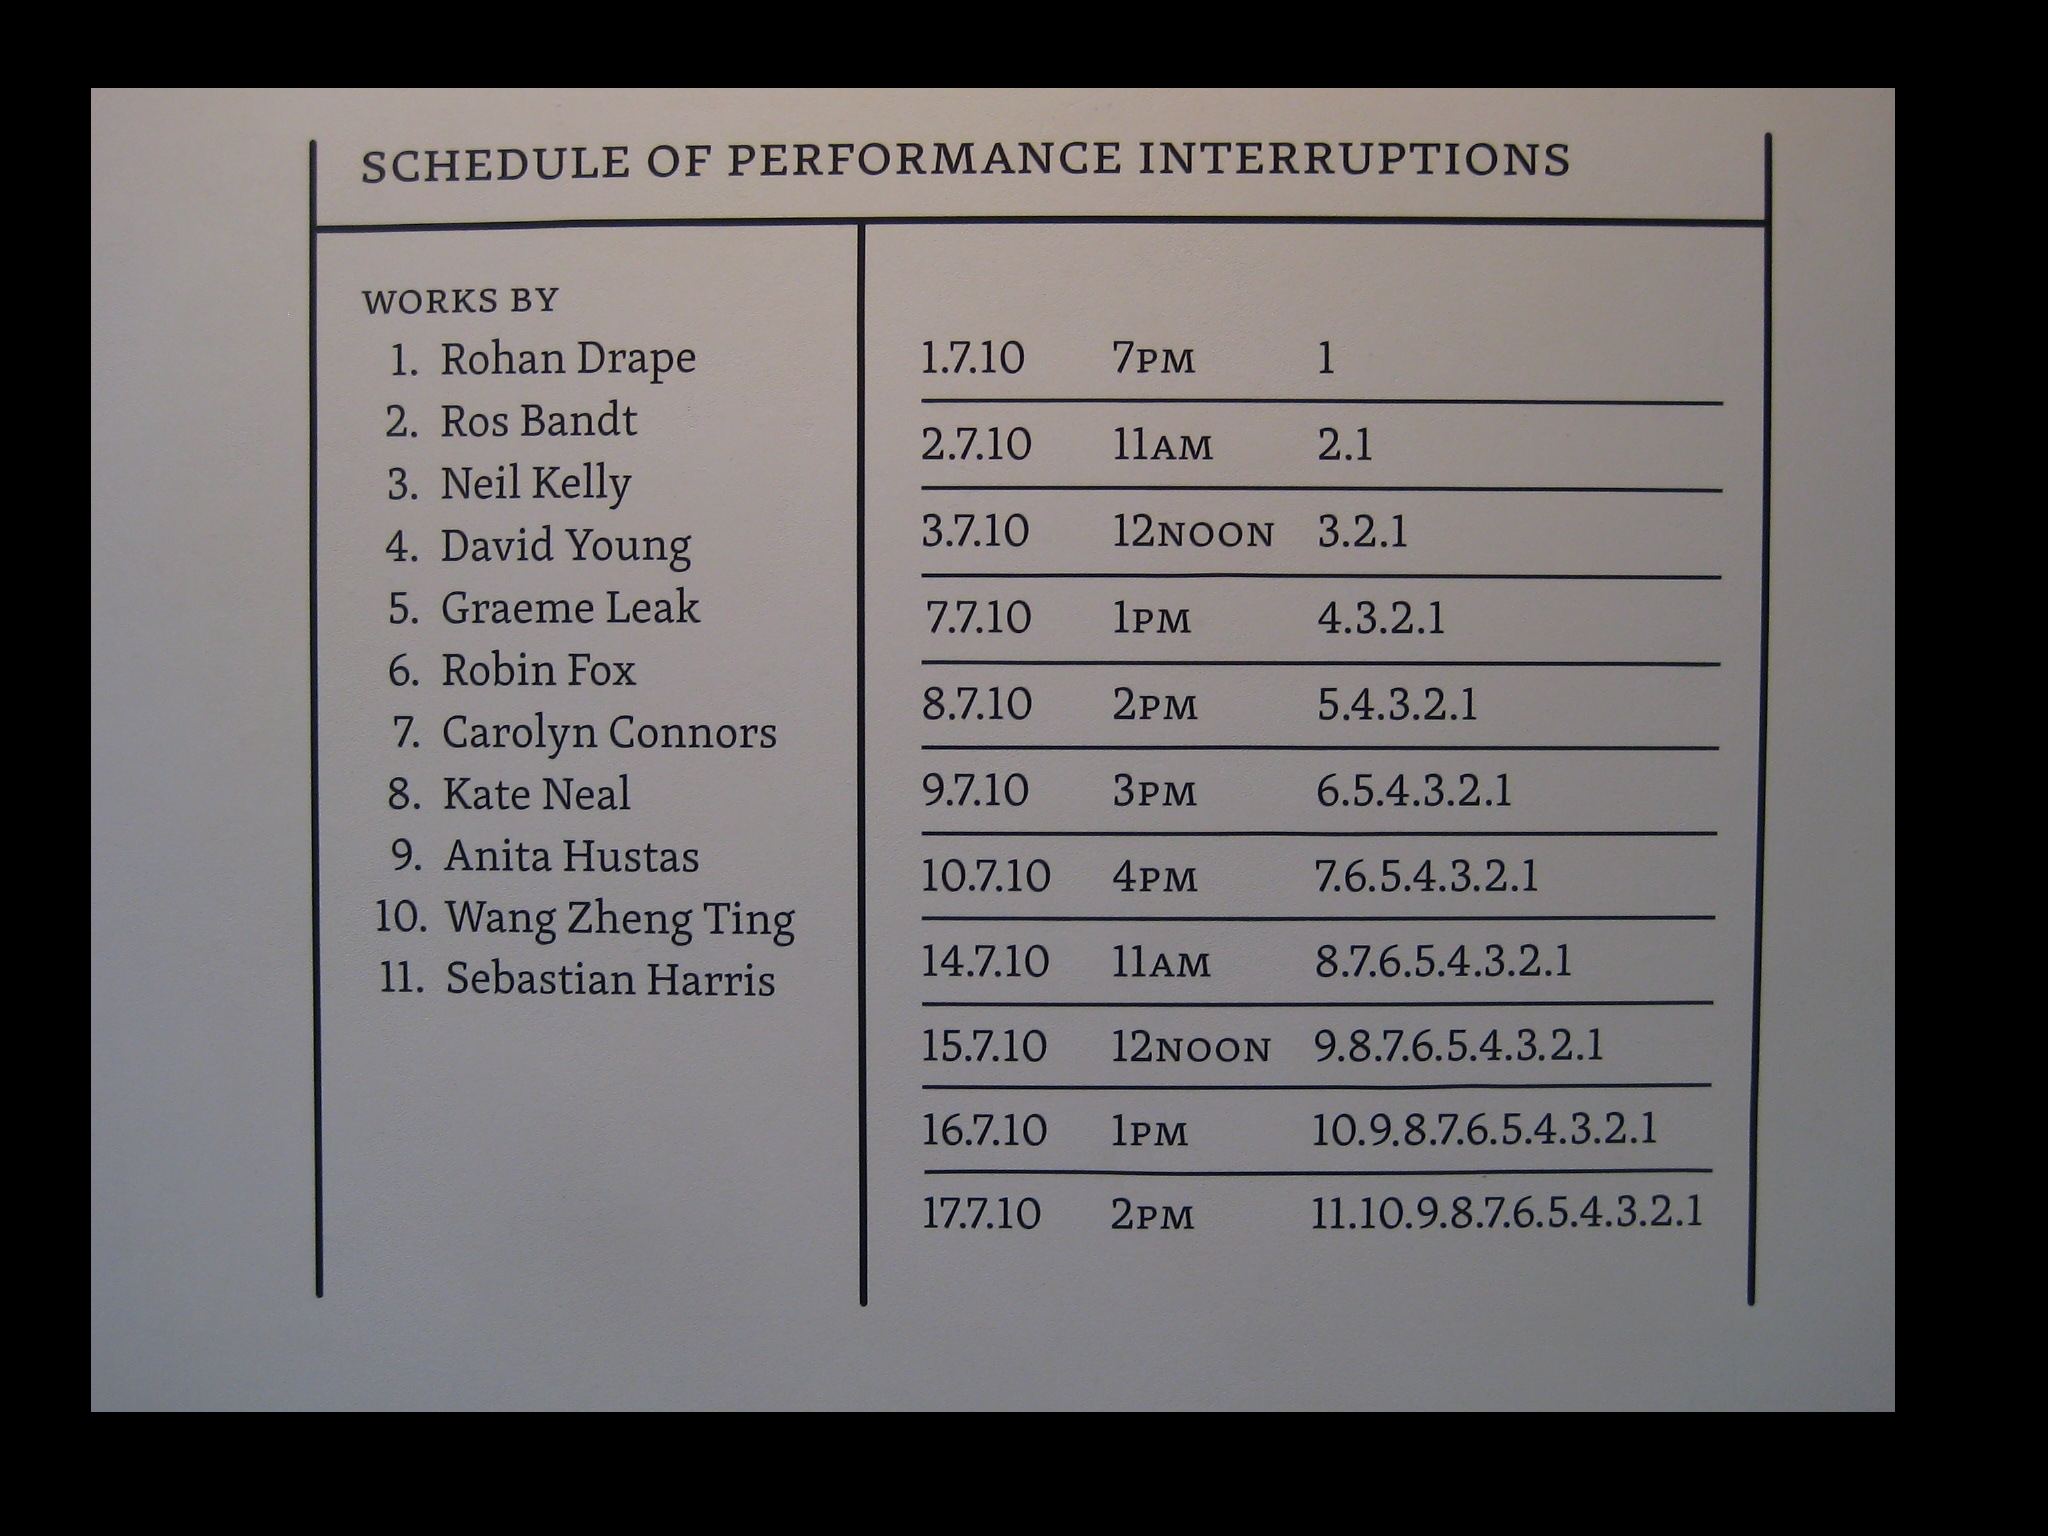 constellation schedule of performance interruptions on wall for upload